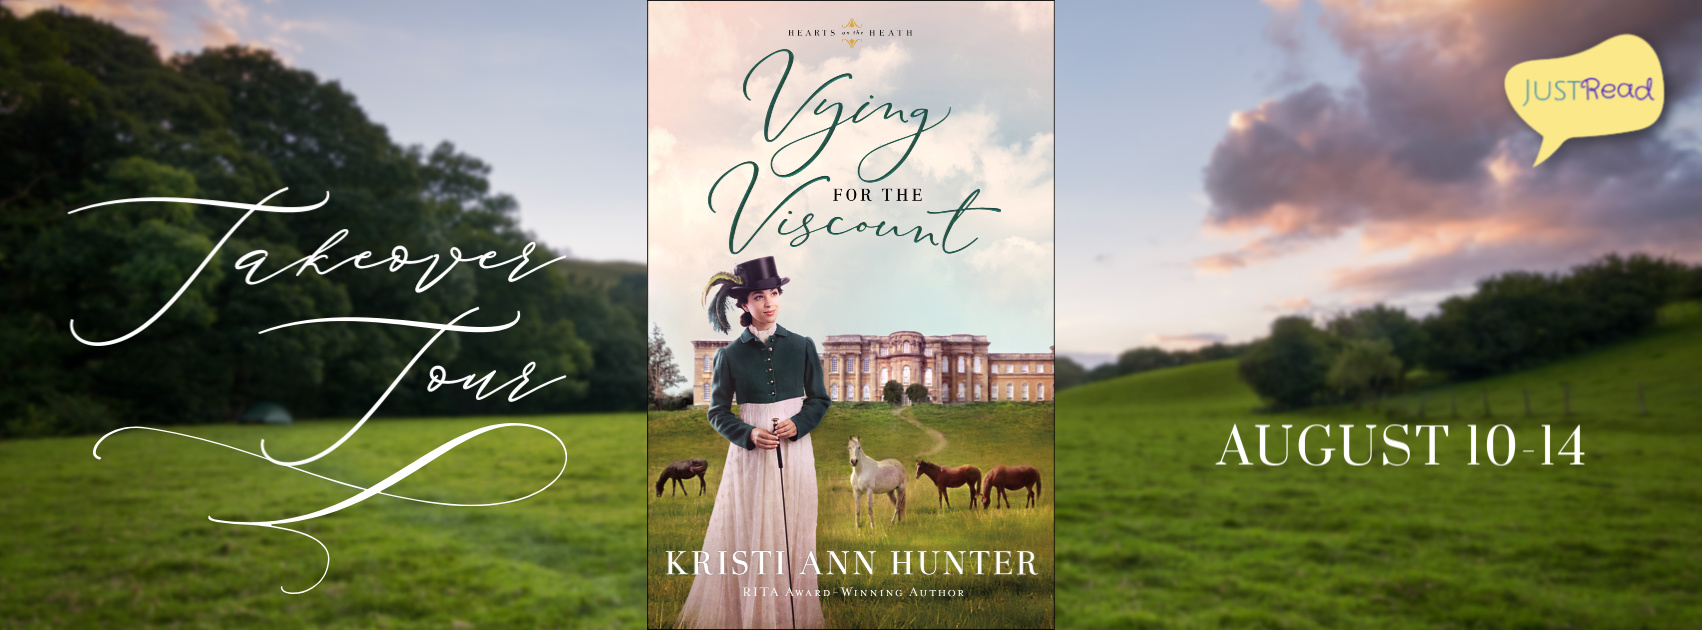 Welcome to the Vying for the Viscount Takeover Tour & Giveaway!